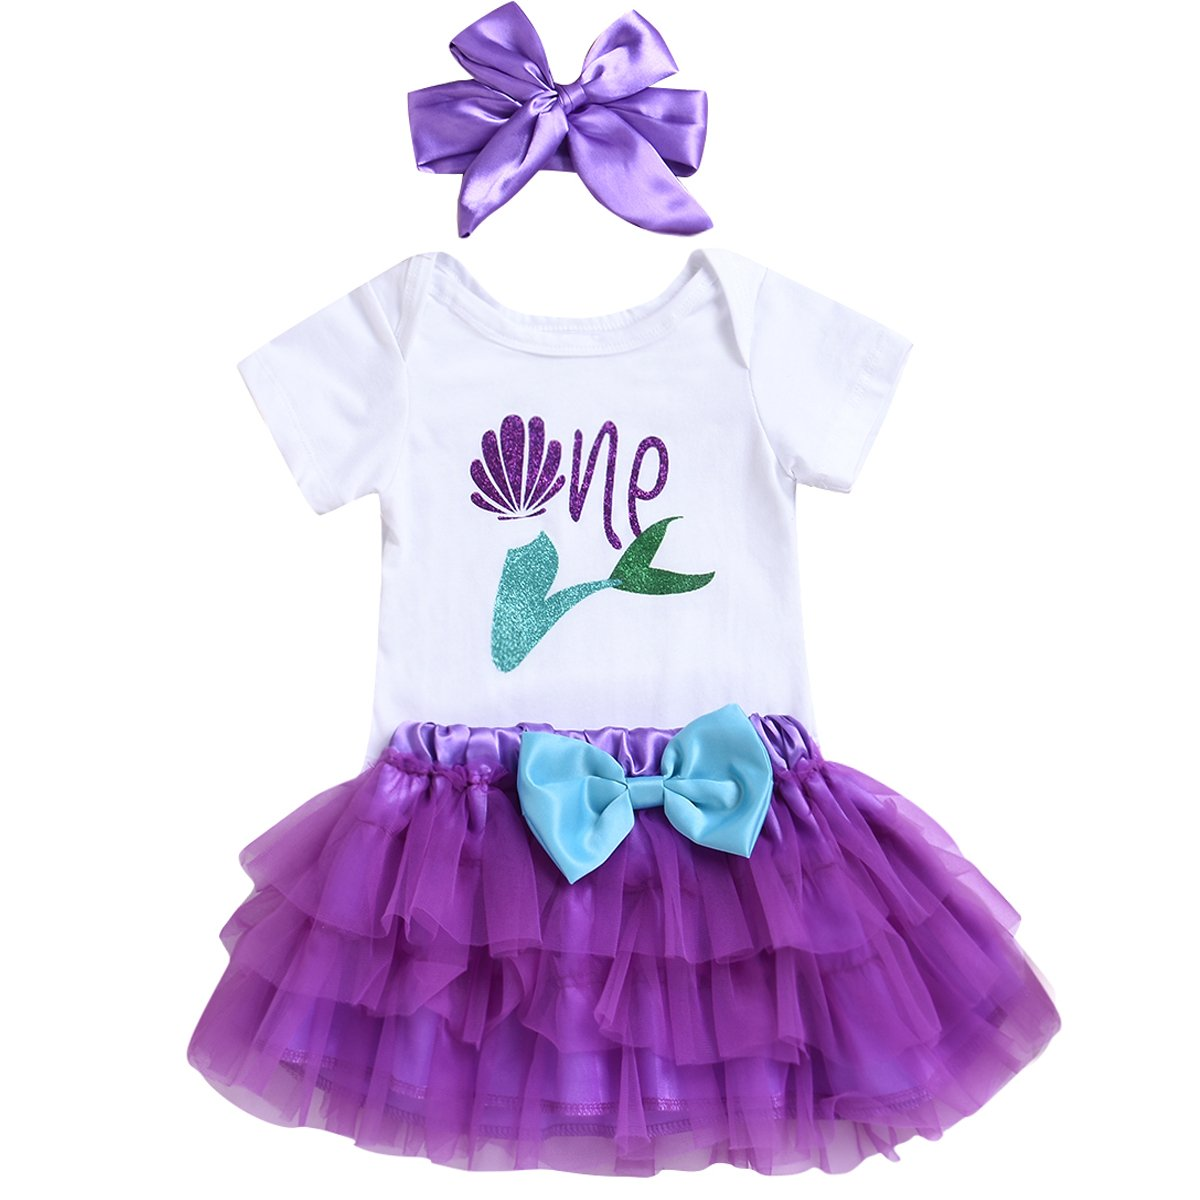 3PCS Toddler Baby Girls Outfit One Mermaid Romper Top+Tutu Skirt + Headband Clothes Set